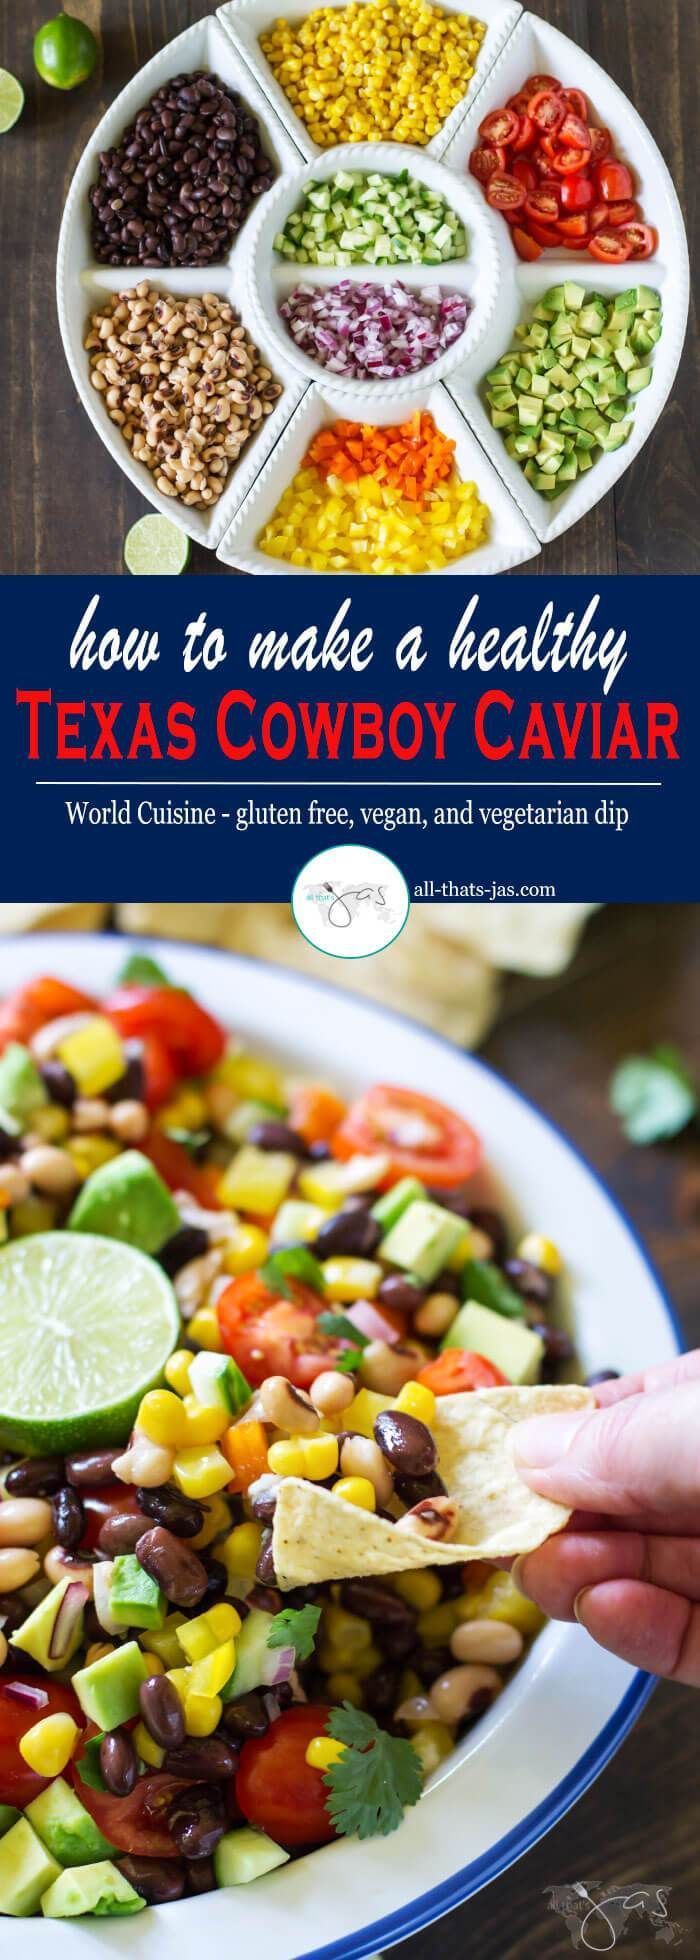 How to Make a Healthy Texas Cowboy Caviar Recipe